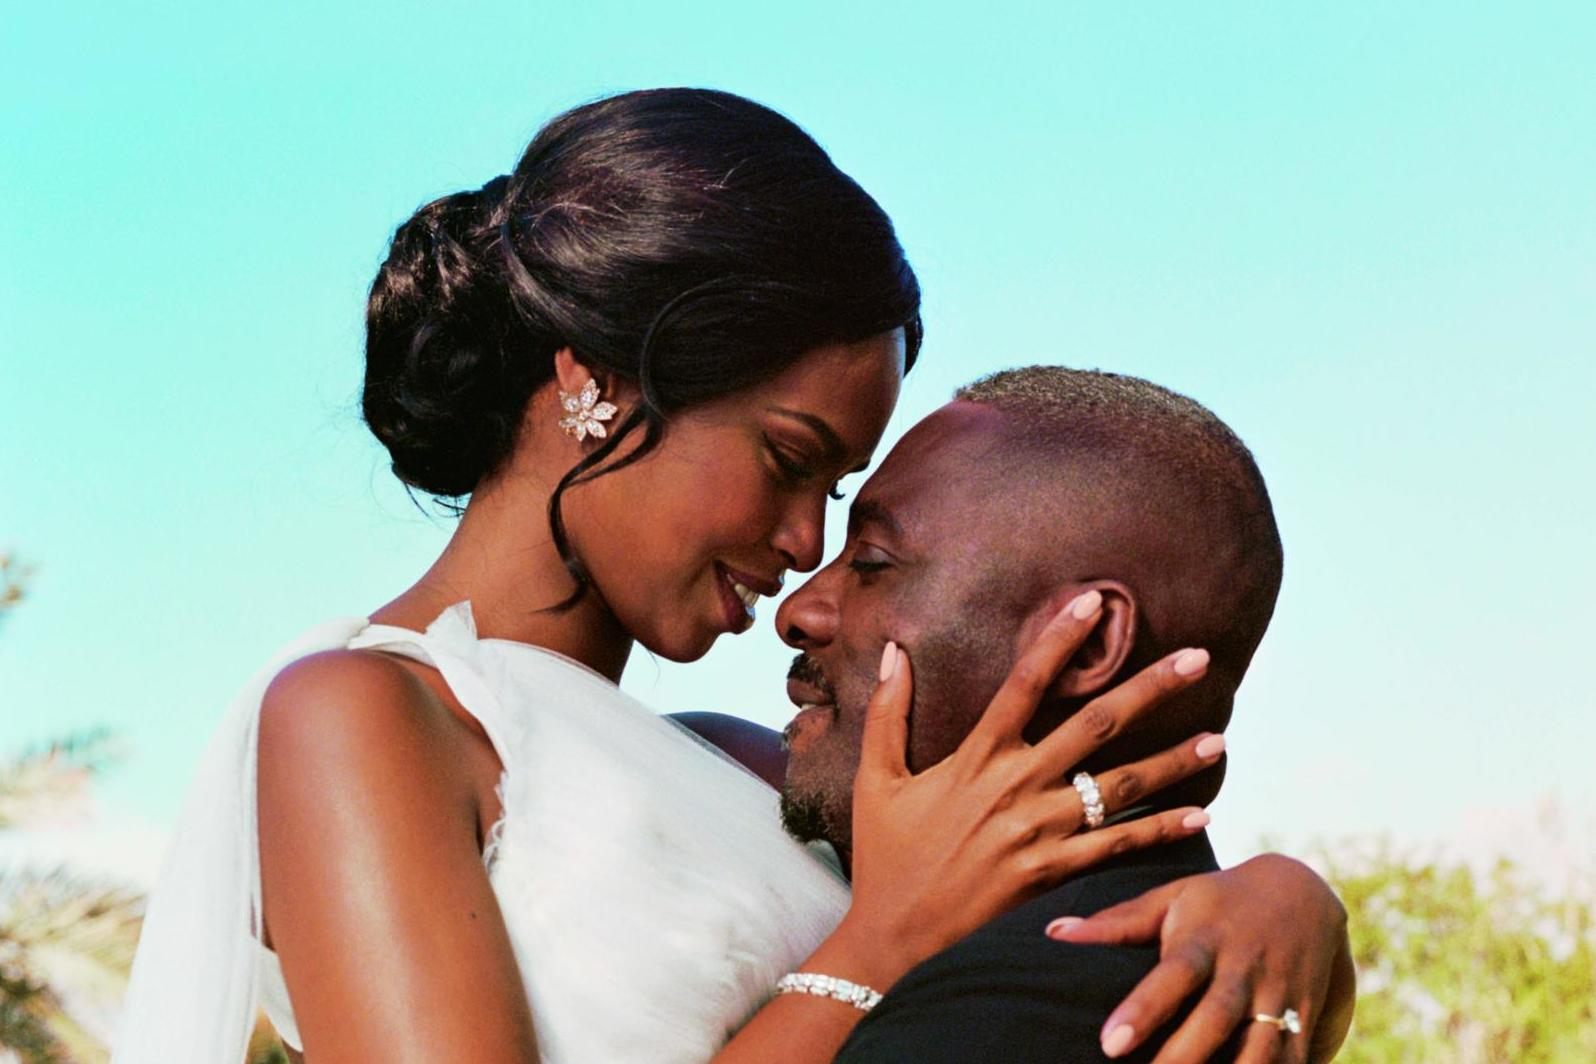 weddings - latest news, breaking stories and comment - The